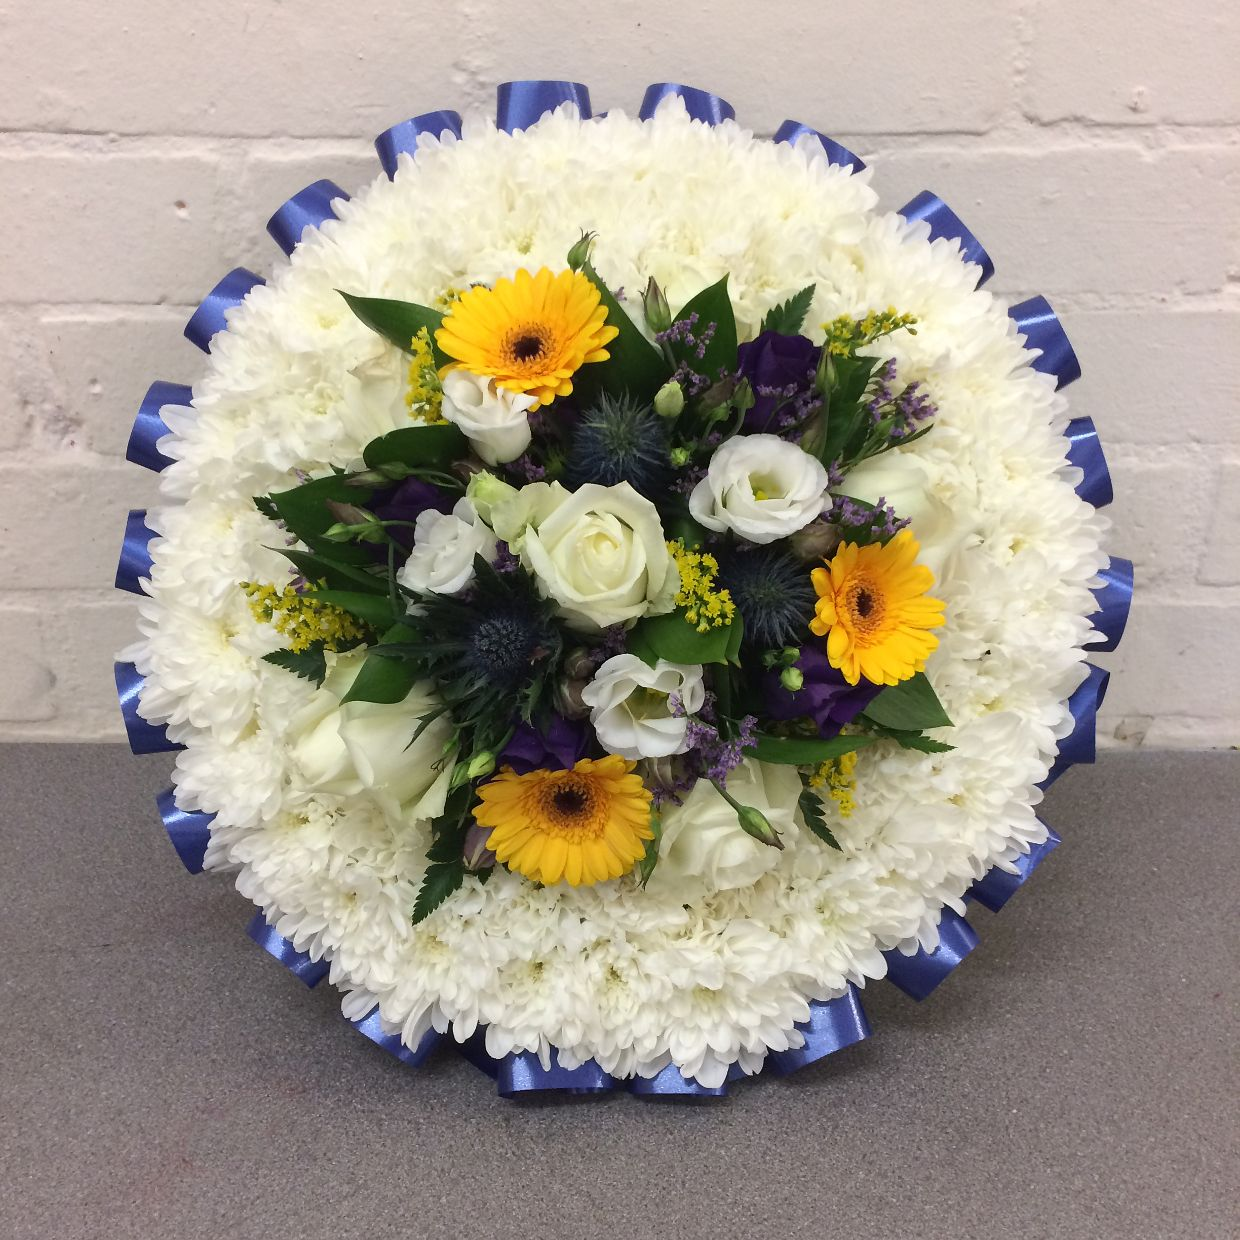 Colourful Funeral Posy Tributeblossom Florists For Funeral Flower